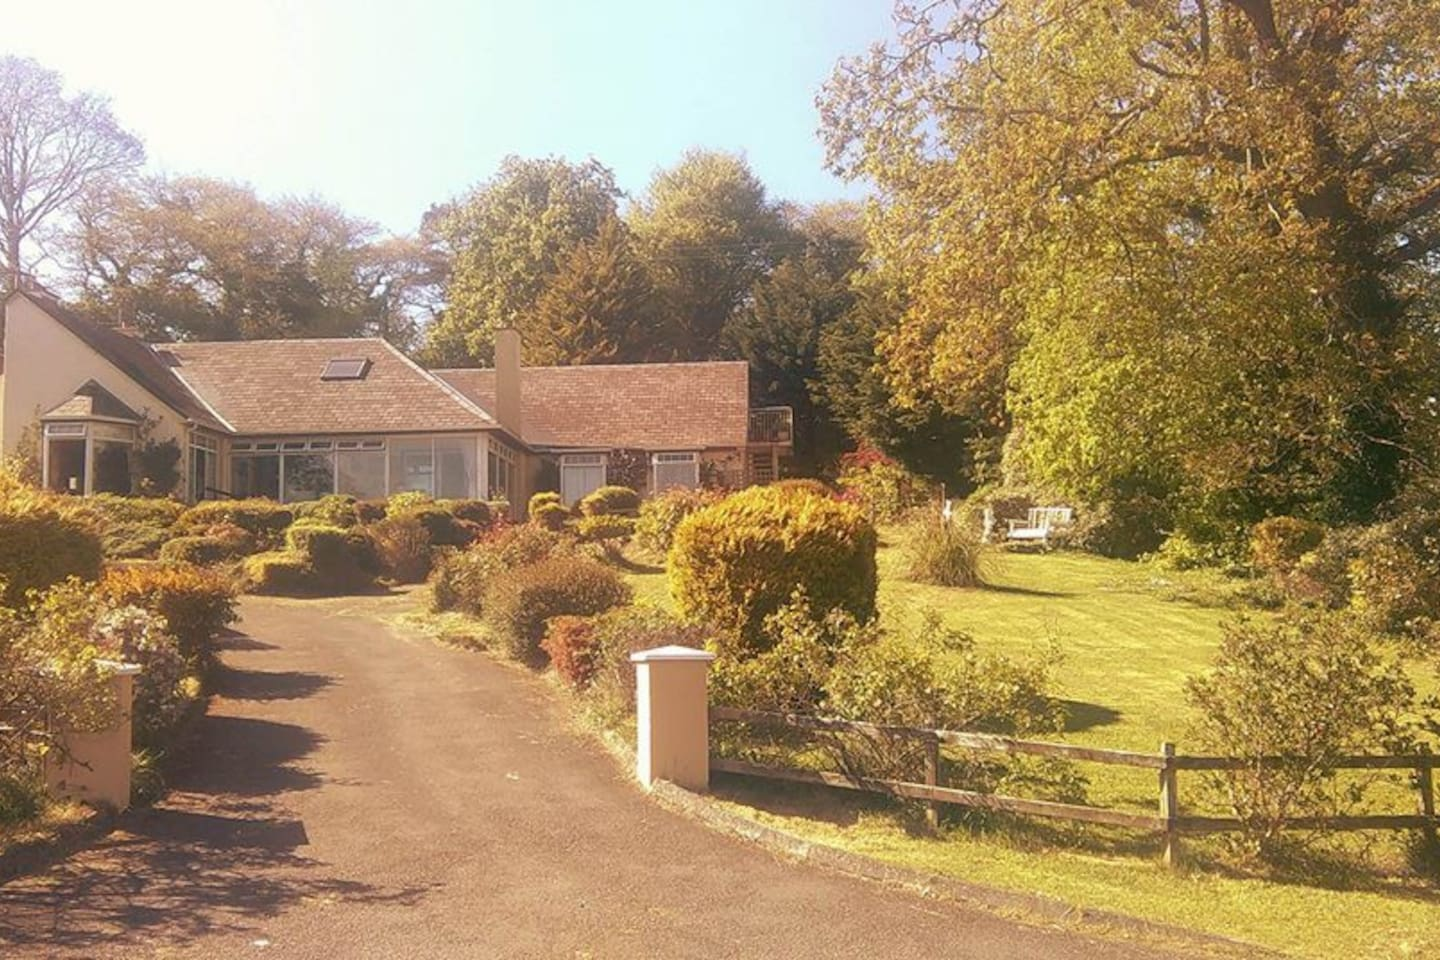 Our peaceful family home which is overlooking a private bay, spacious gardens and is walking distance from Donegal Town and a secluded beach and coastline.